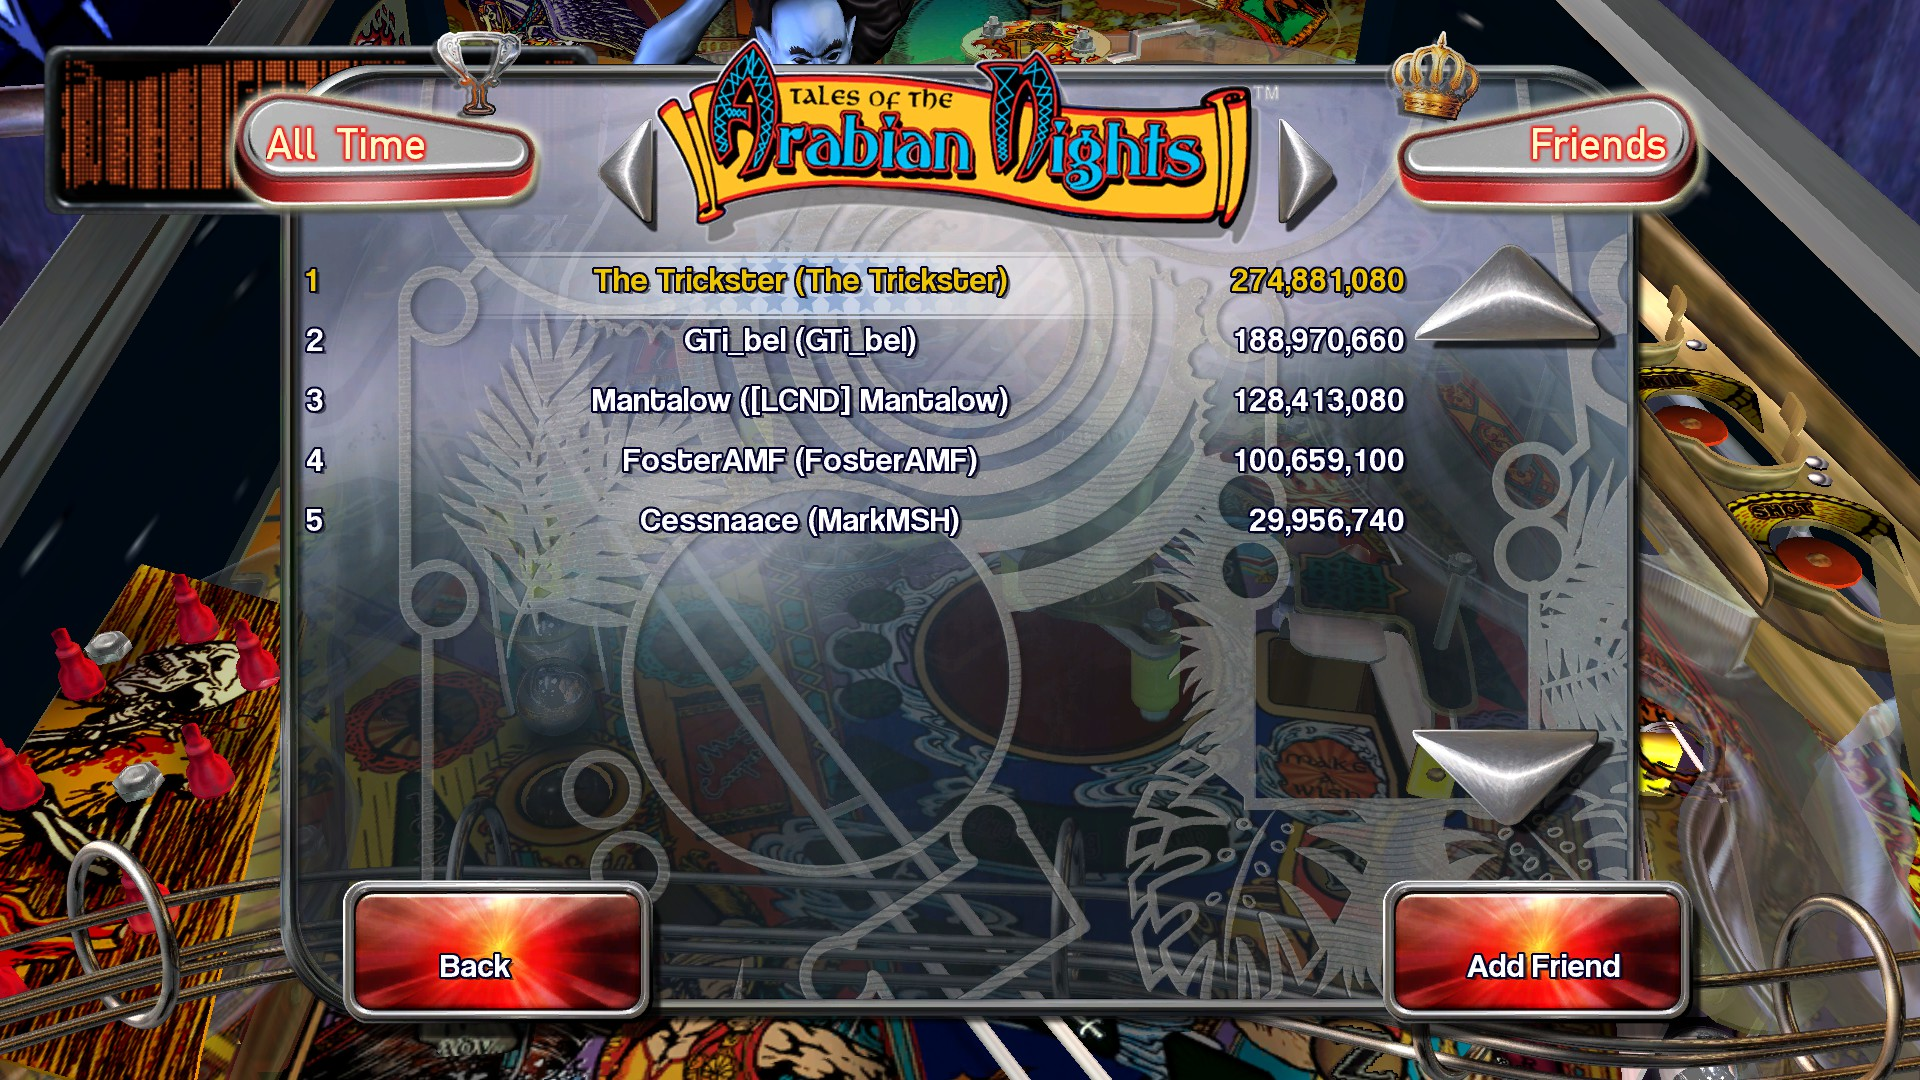 TheTrickster: Pinball Arcade: Tales of the Arabian Nights [3 balls] (PC) 274,881,080 points on 2016-02-25 15:34:14